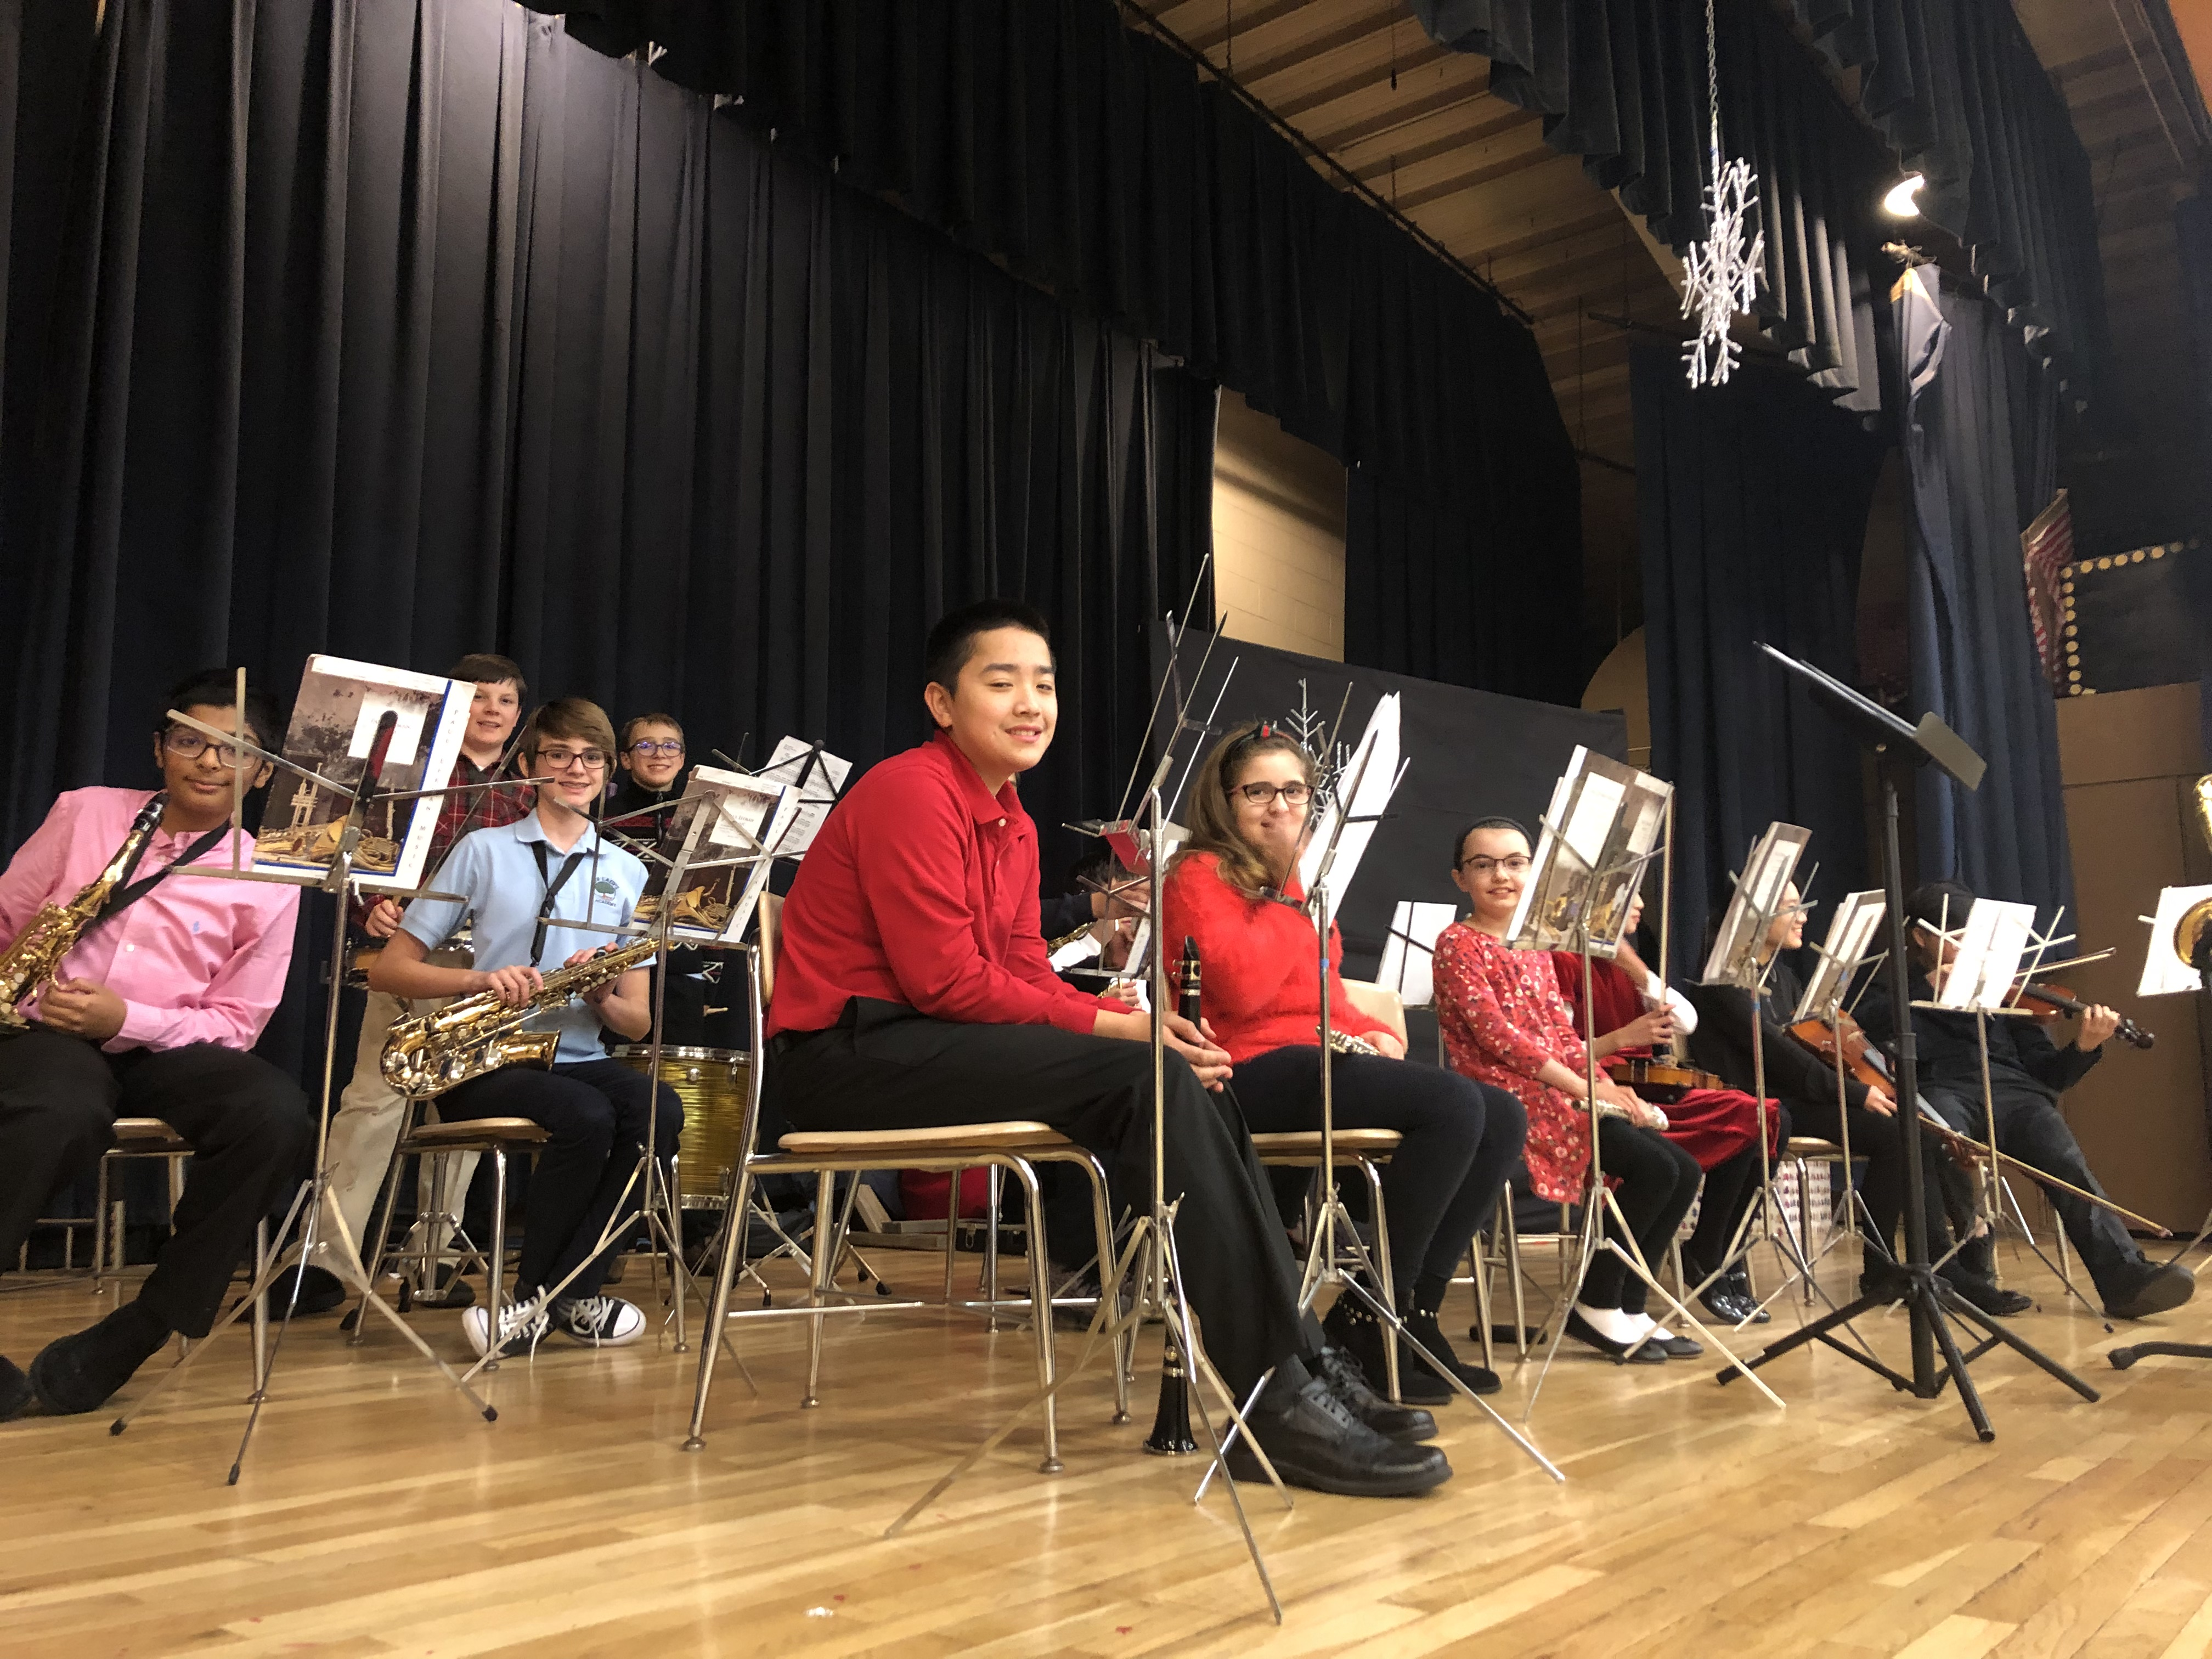 Our Ladys Academy Band Concert